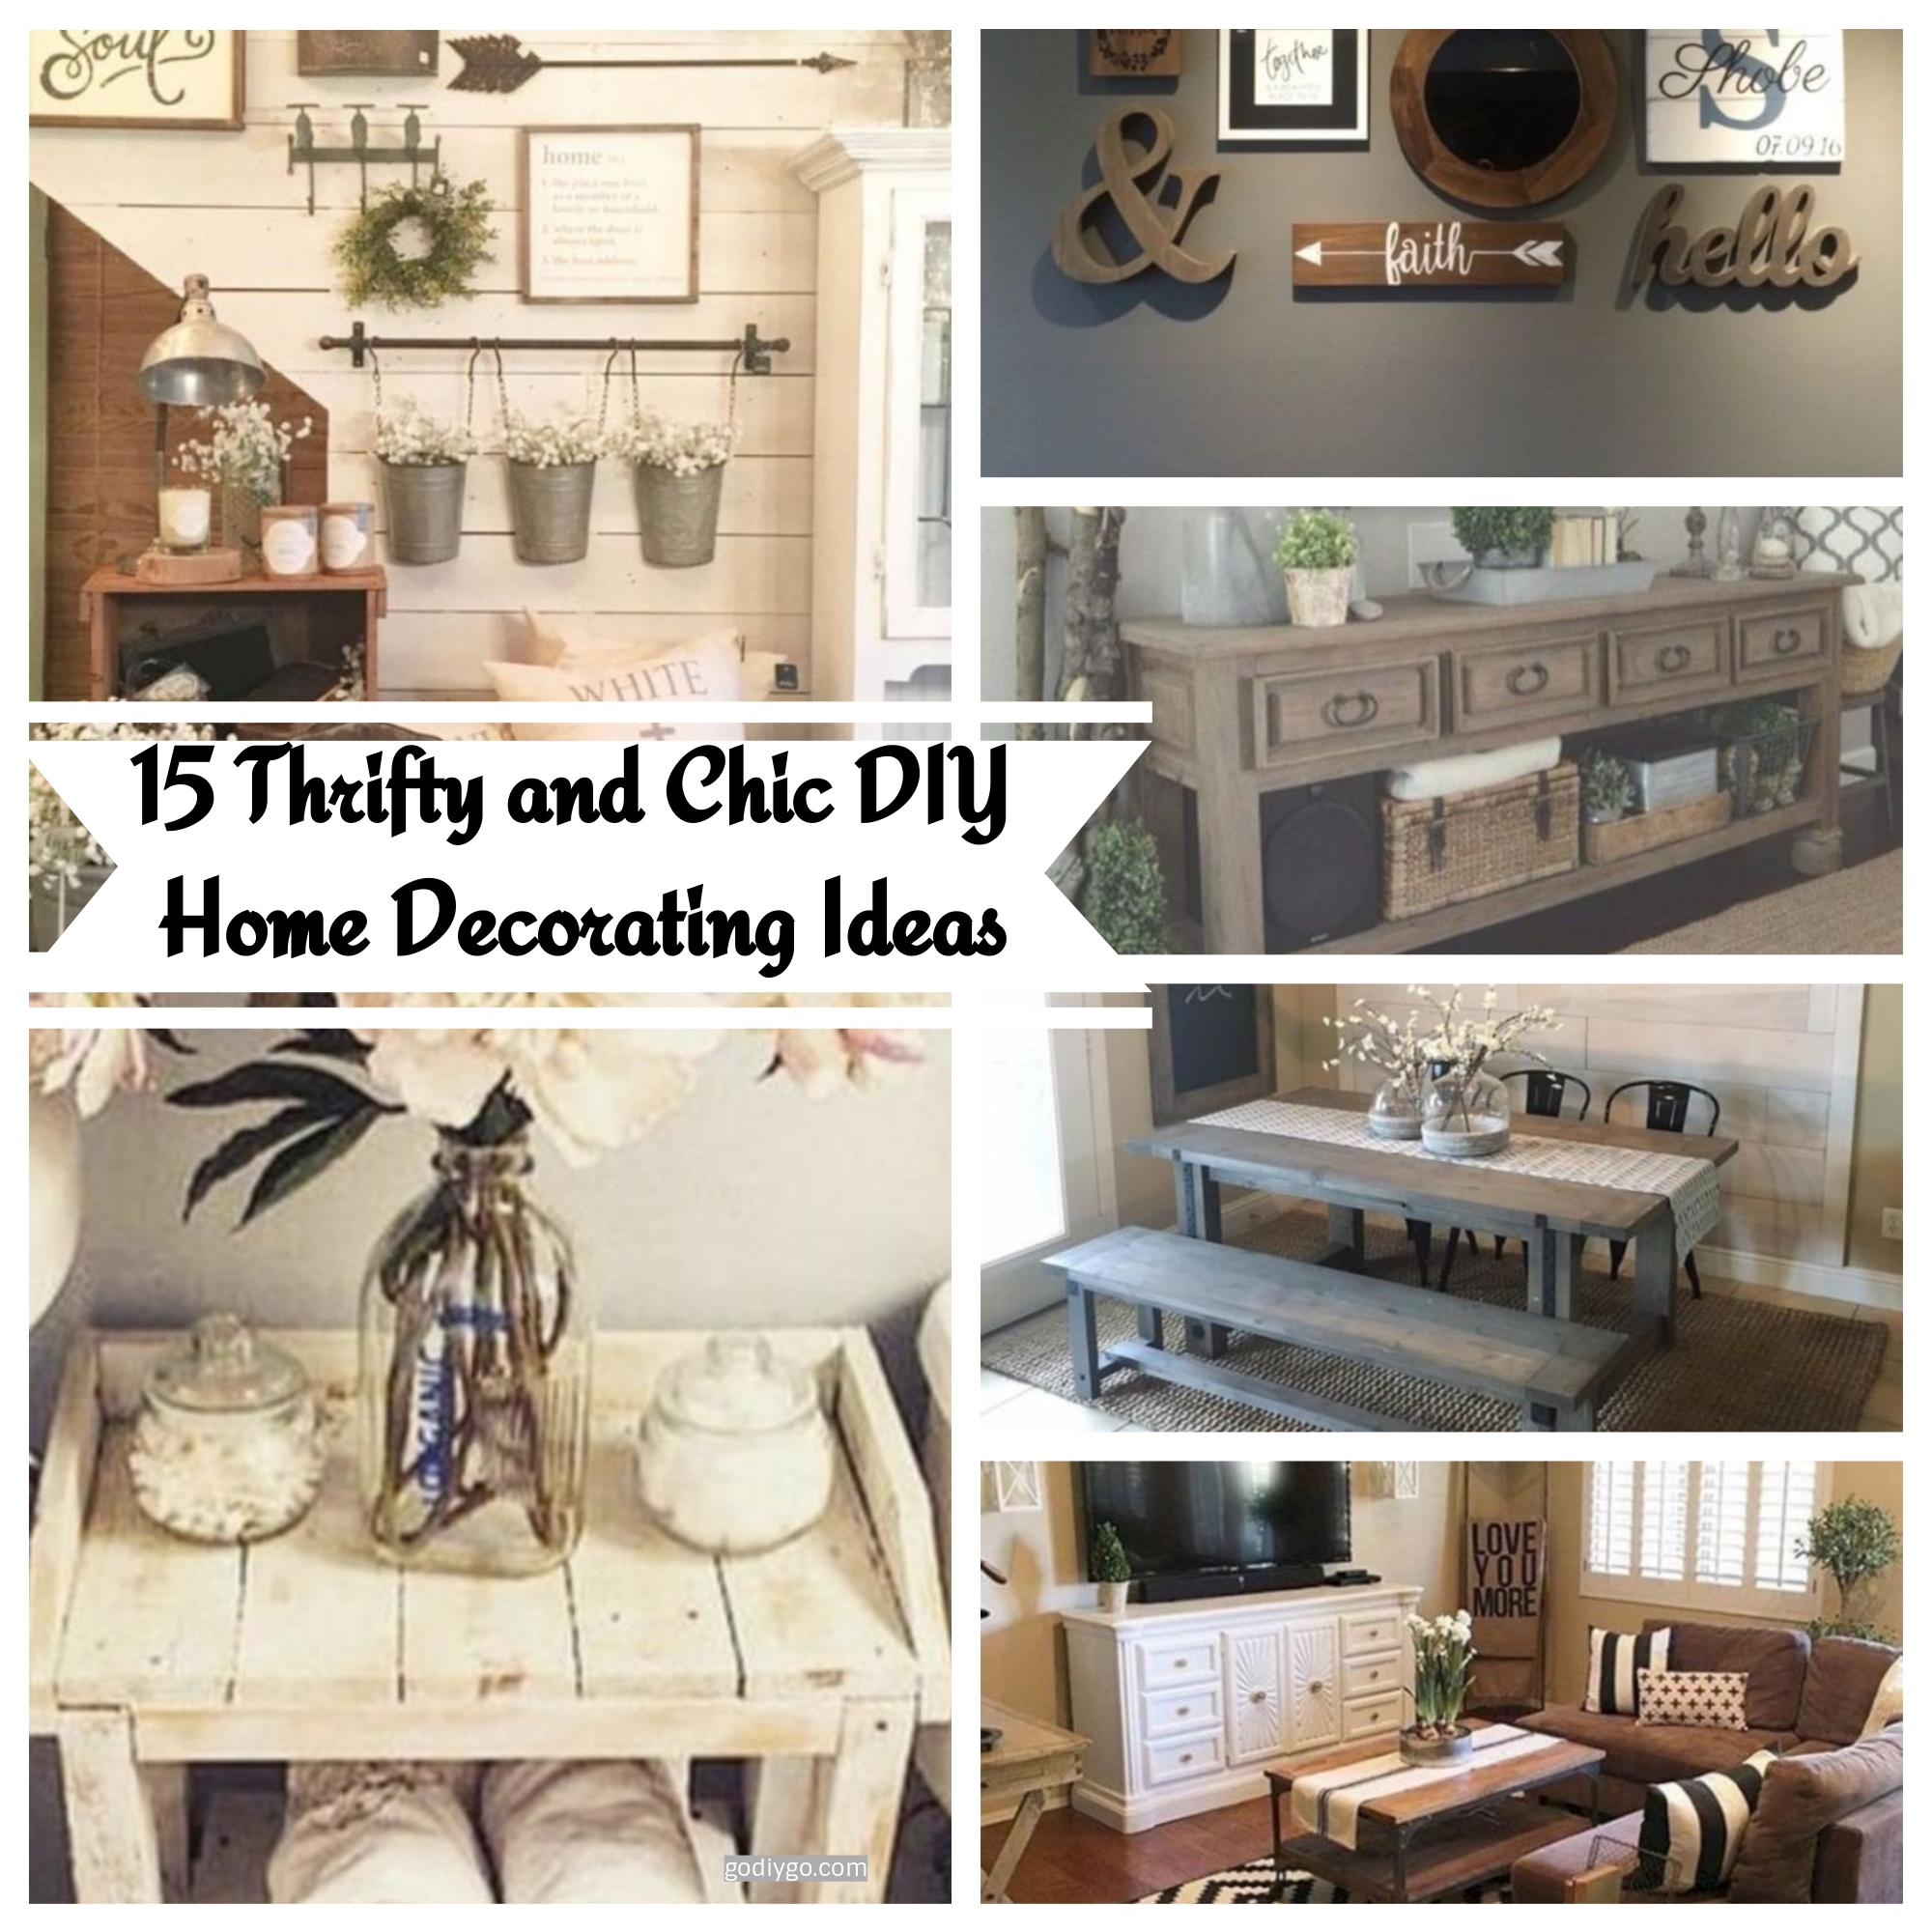 Diy Home Decor Projects: 15 Thrifty And Chic DIY Home Decorating Ideas